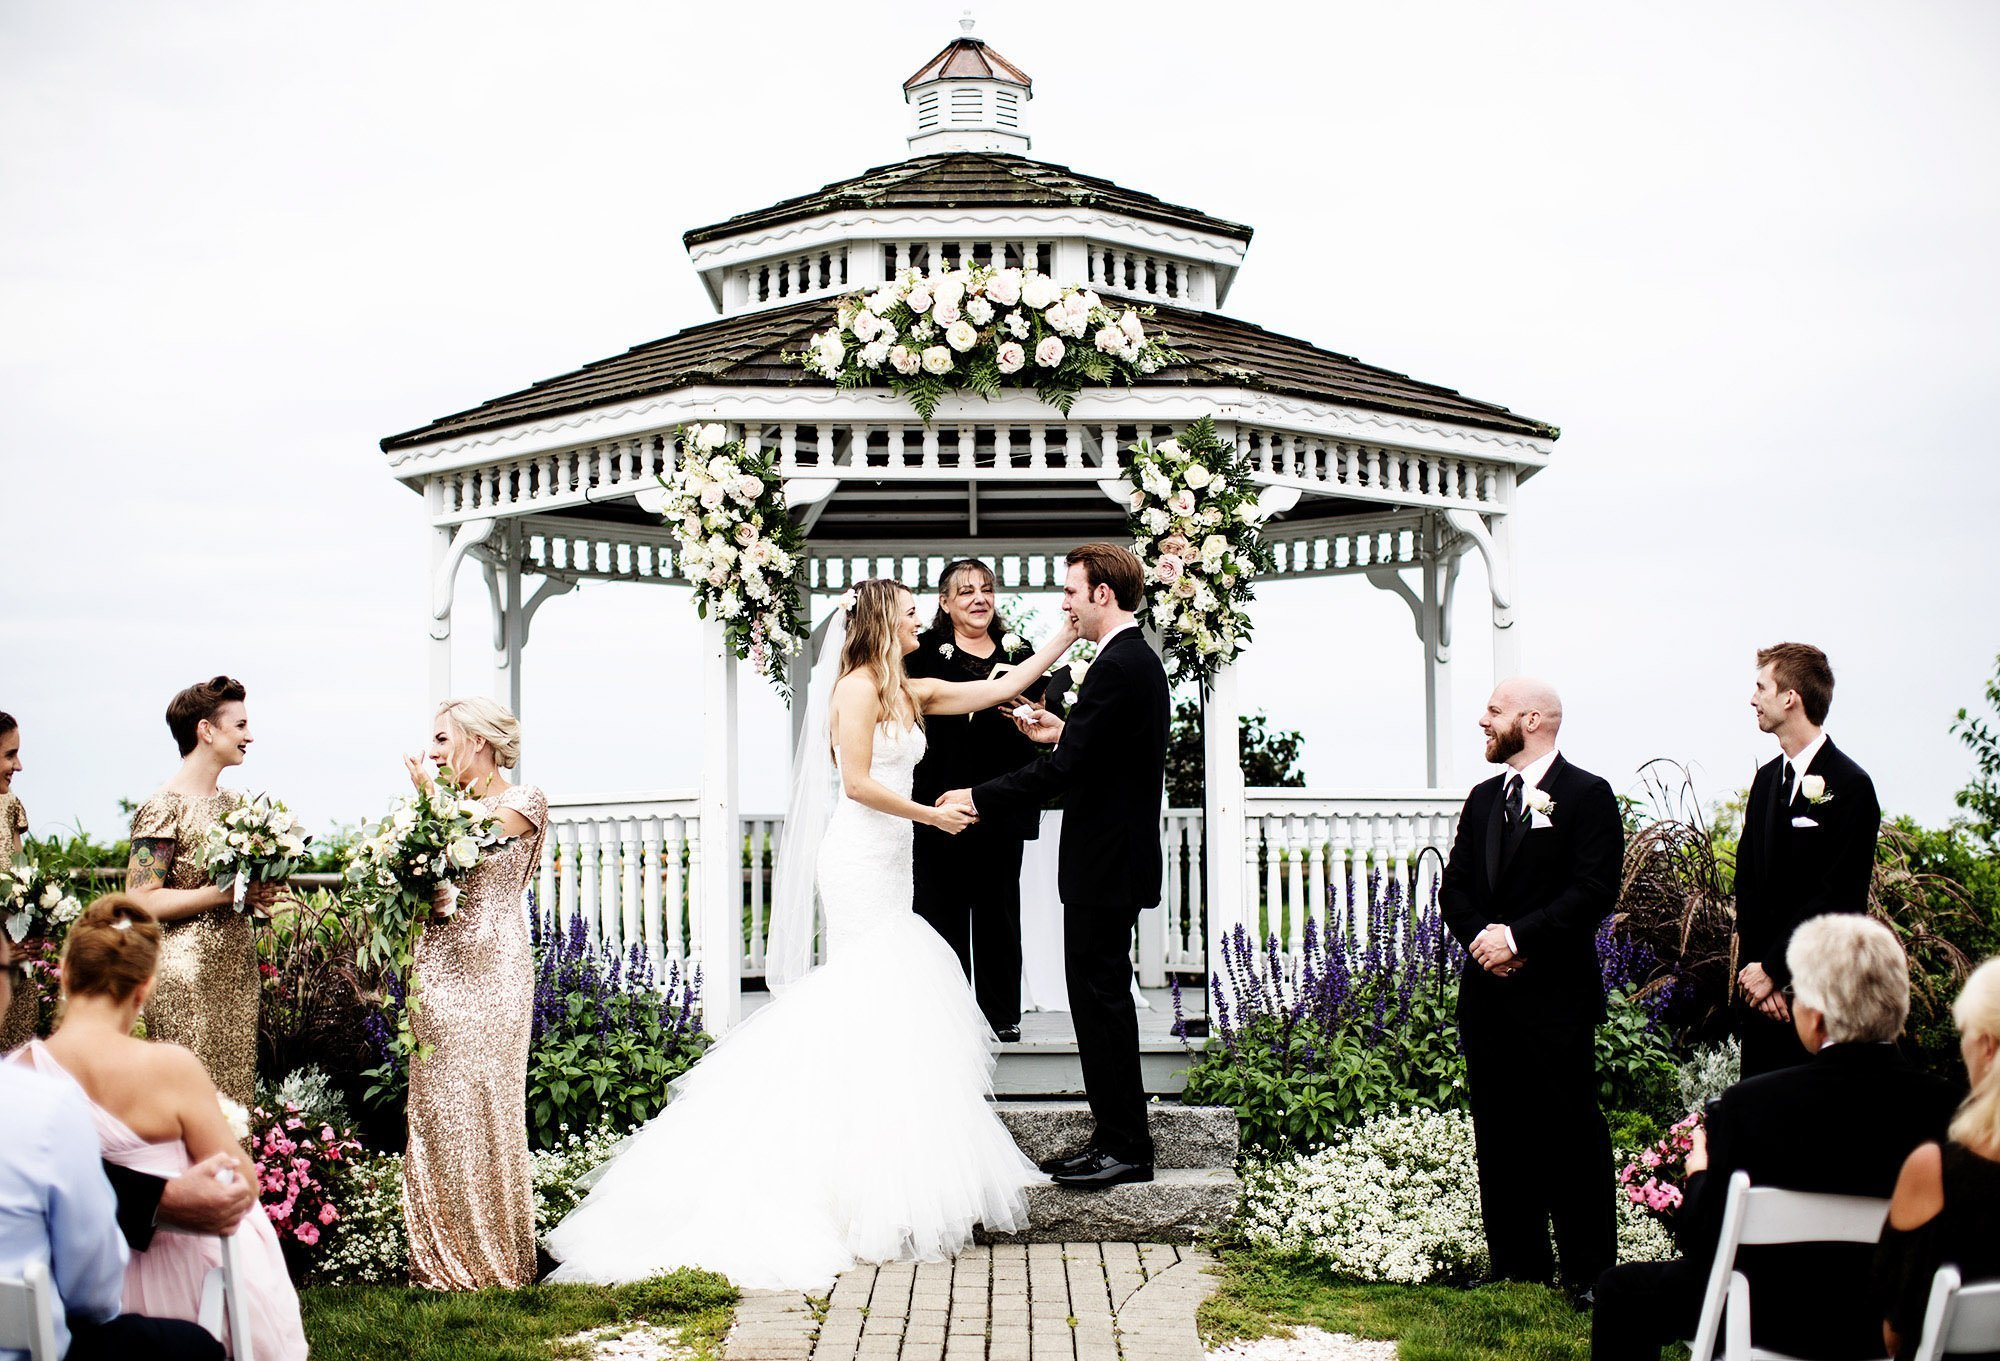 The bride and groom participate in their ceremony during their White Cliffs Country Club Wedding.